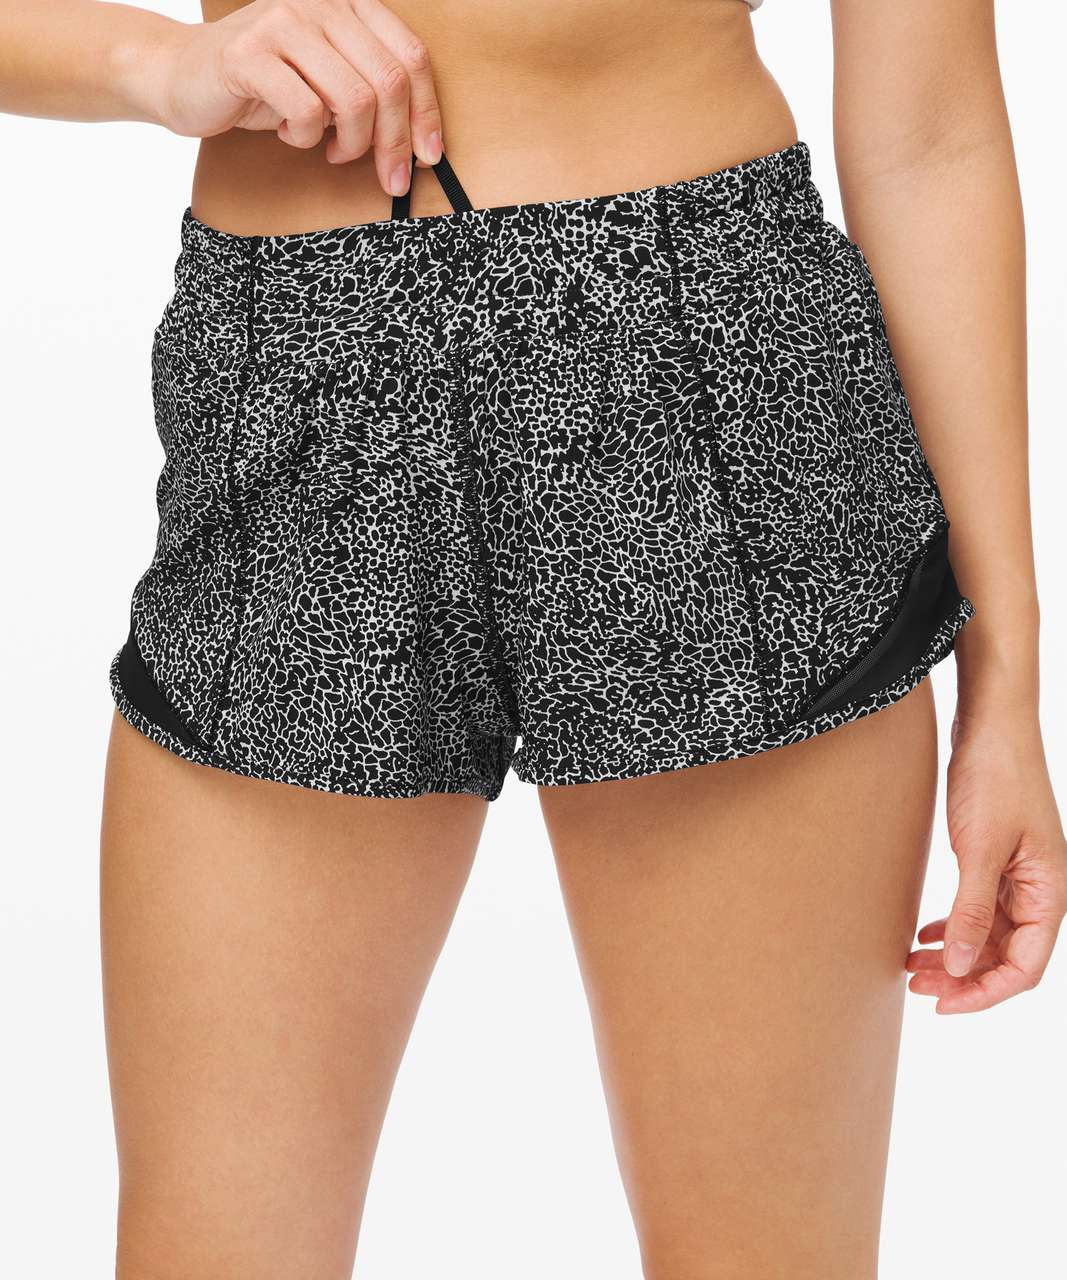 "Lululemon Hotty Hot Short II *2.5"" - Polar Shift Inverse Alpine White Black / Black"